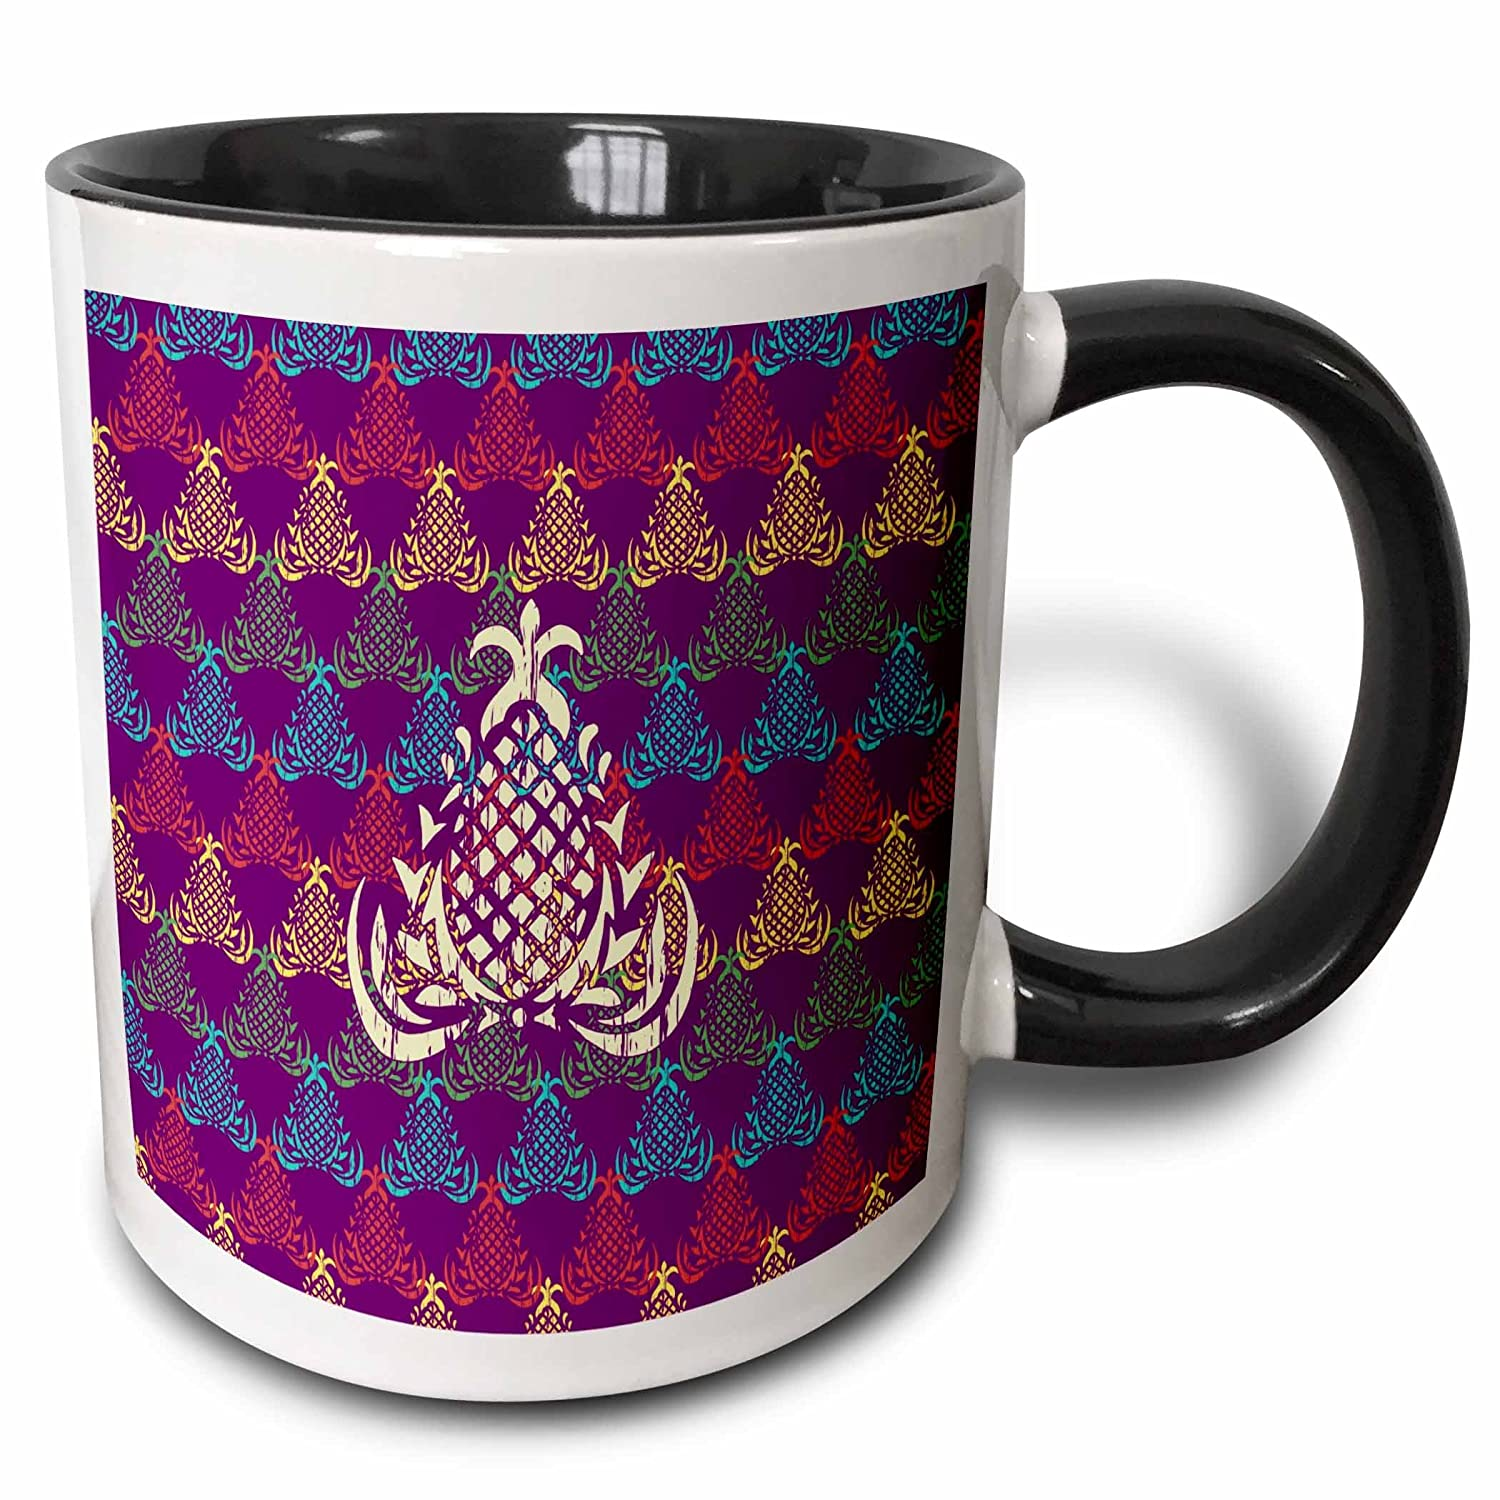 amazon com 3drose russ billington designs classical pineapple design in yellow over purple blue green background 15oz two tone black mug mug 219145 9 kitchen dining amazon com